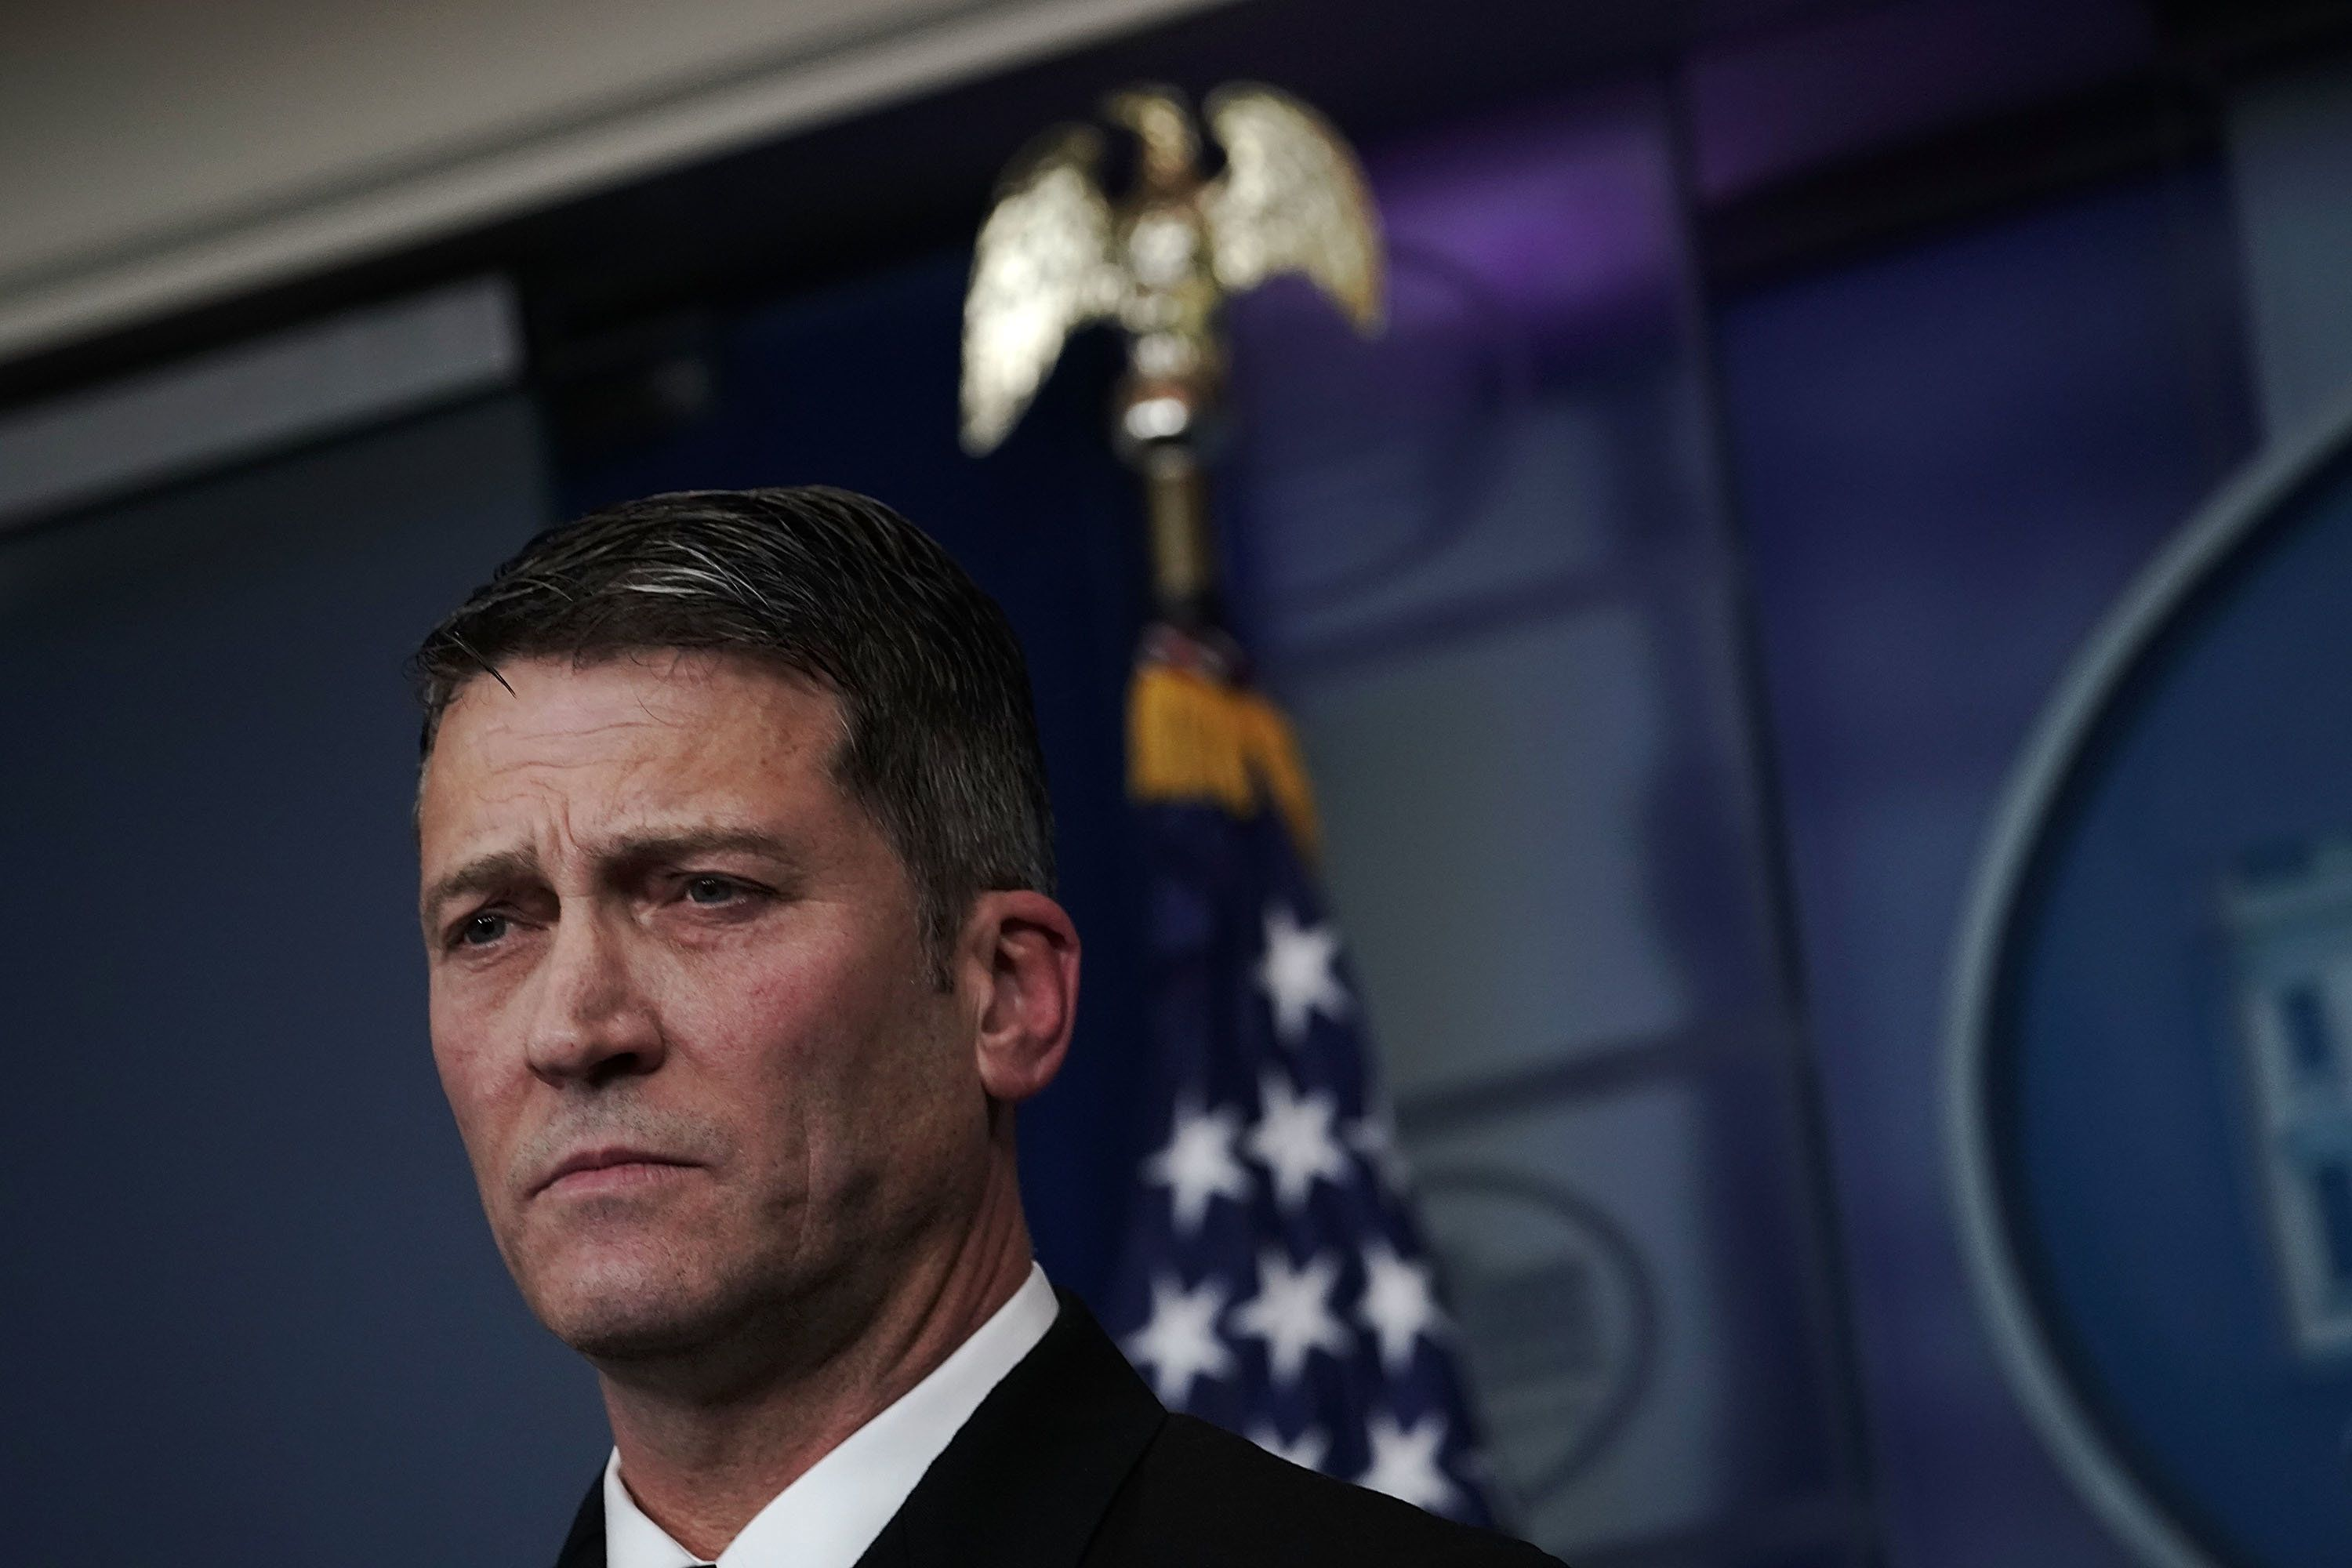 Pence's Doctor Complained About Ronny Jackson to Top White House Aides